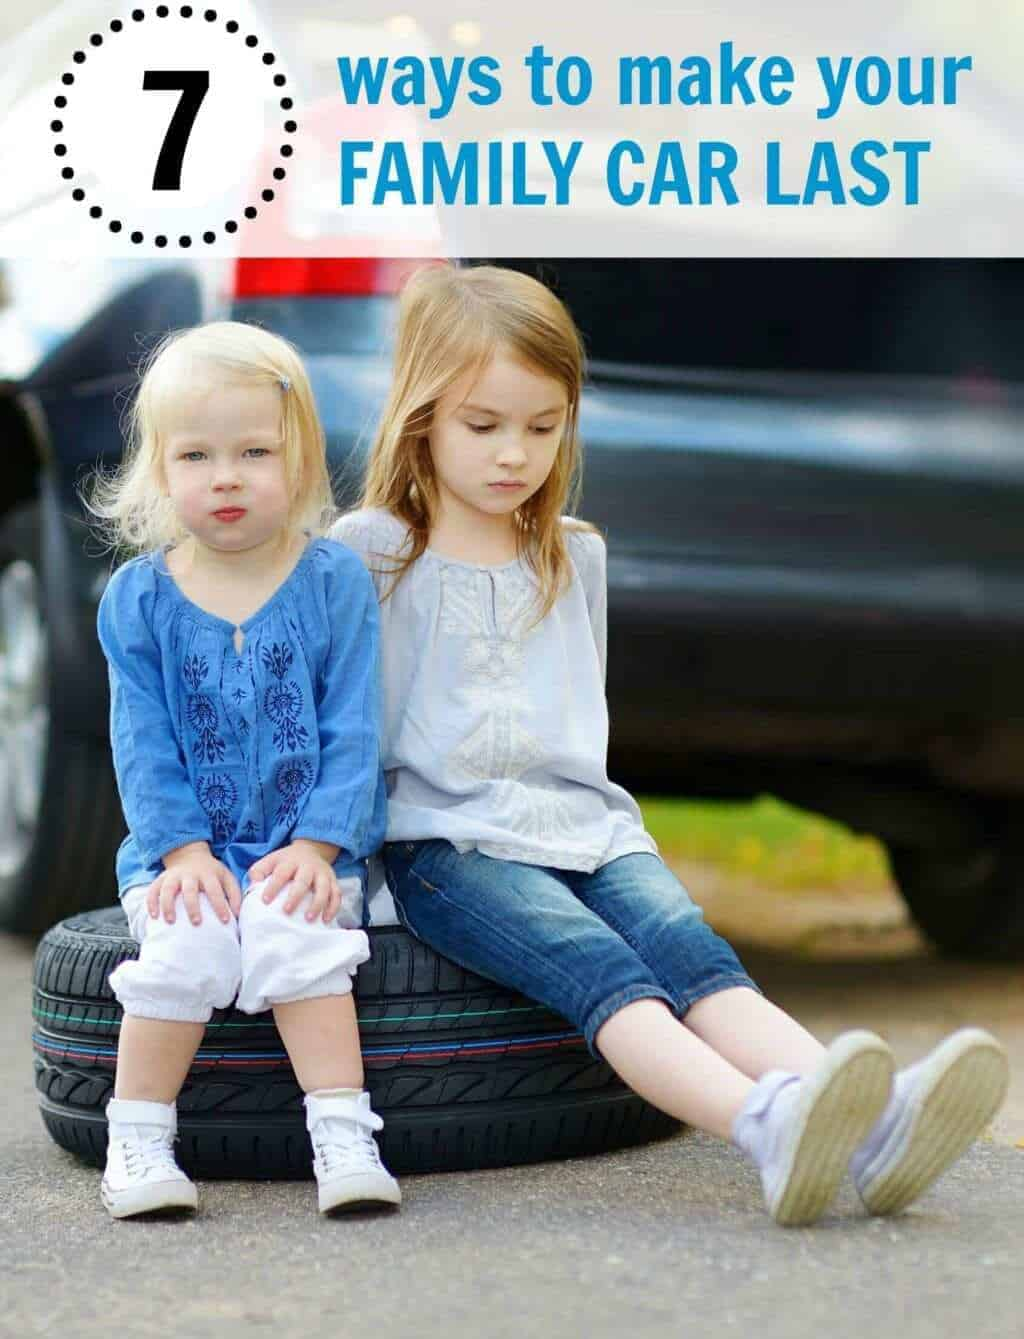 5 ways to make your family car last a long time